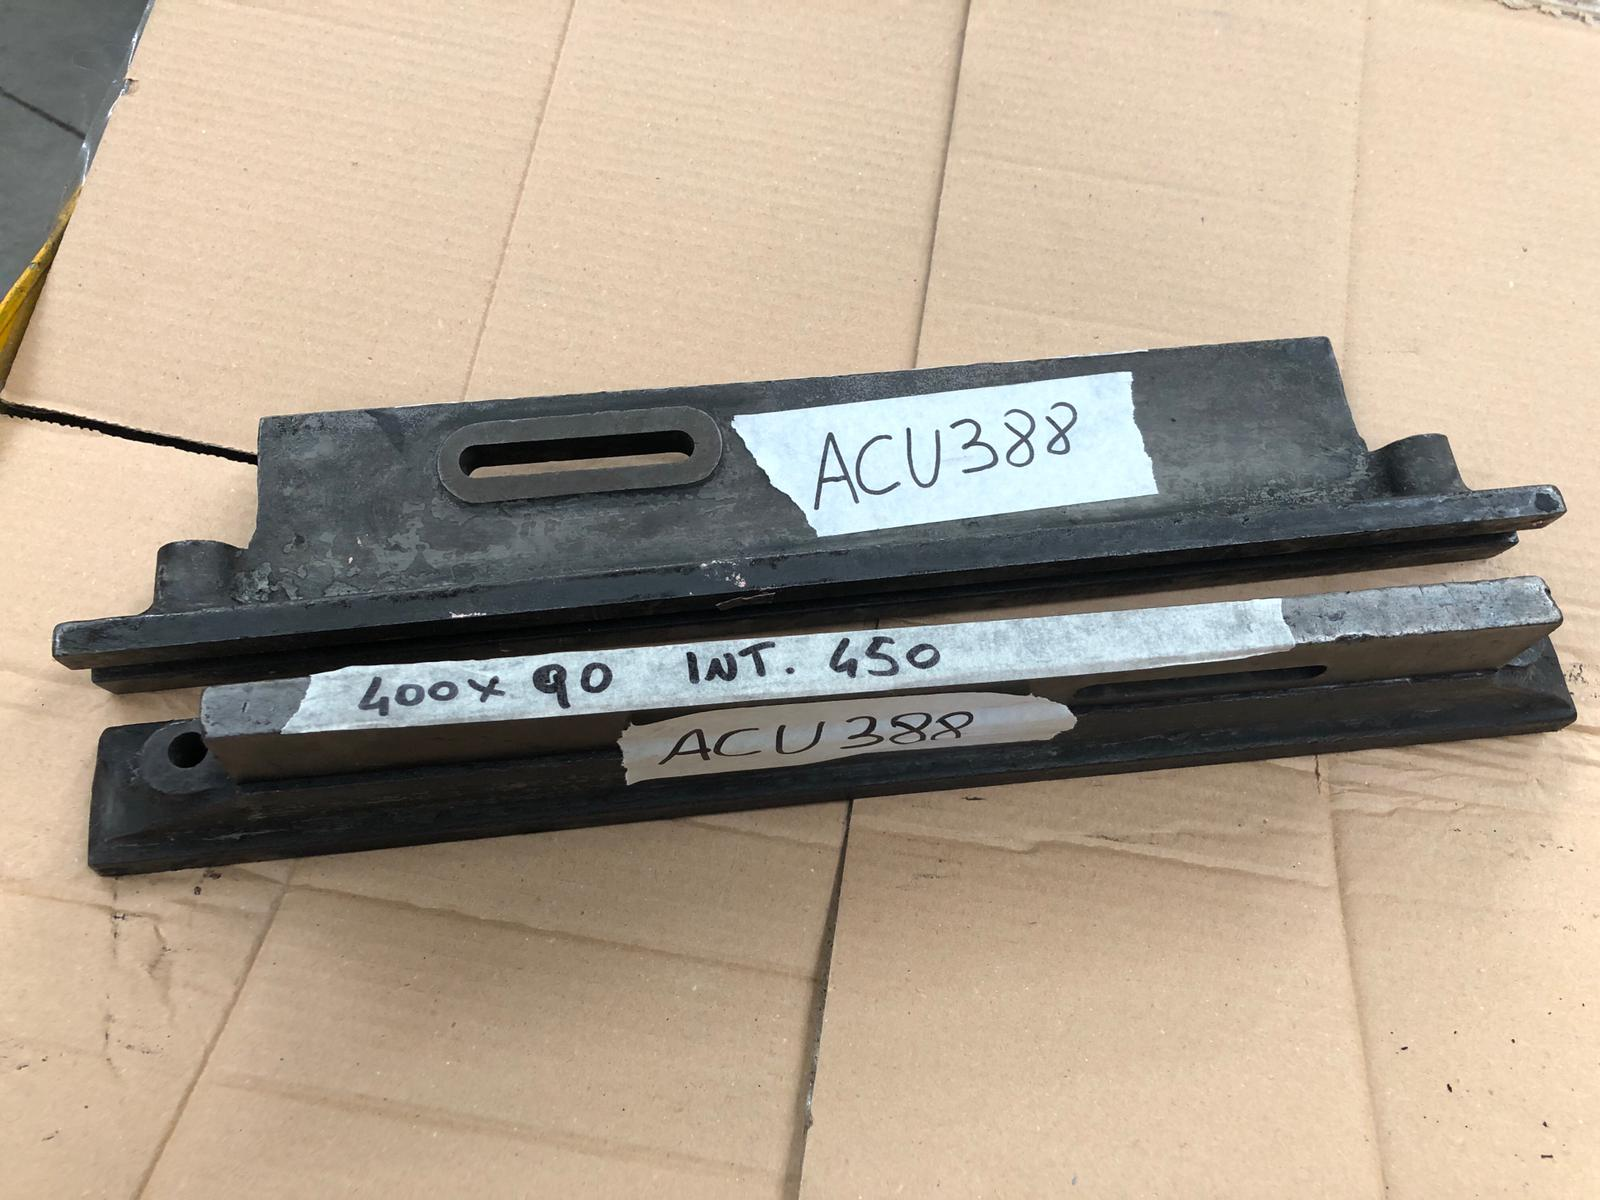 [ACU388] SUPPORTI PARALLELI LUNG. 400 H. 90 INTER. 450